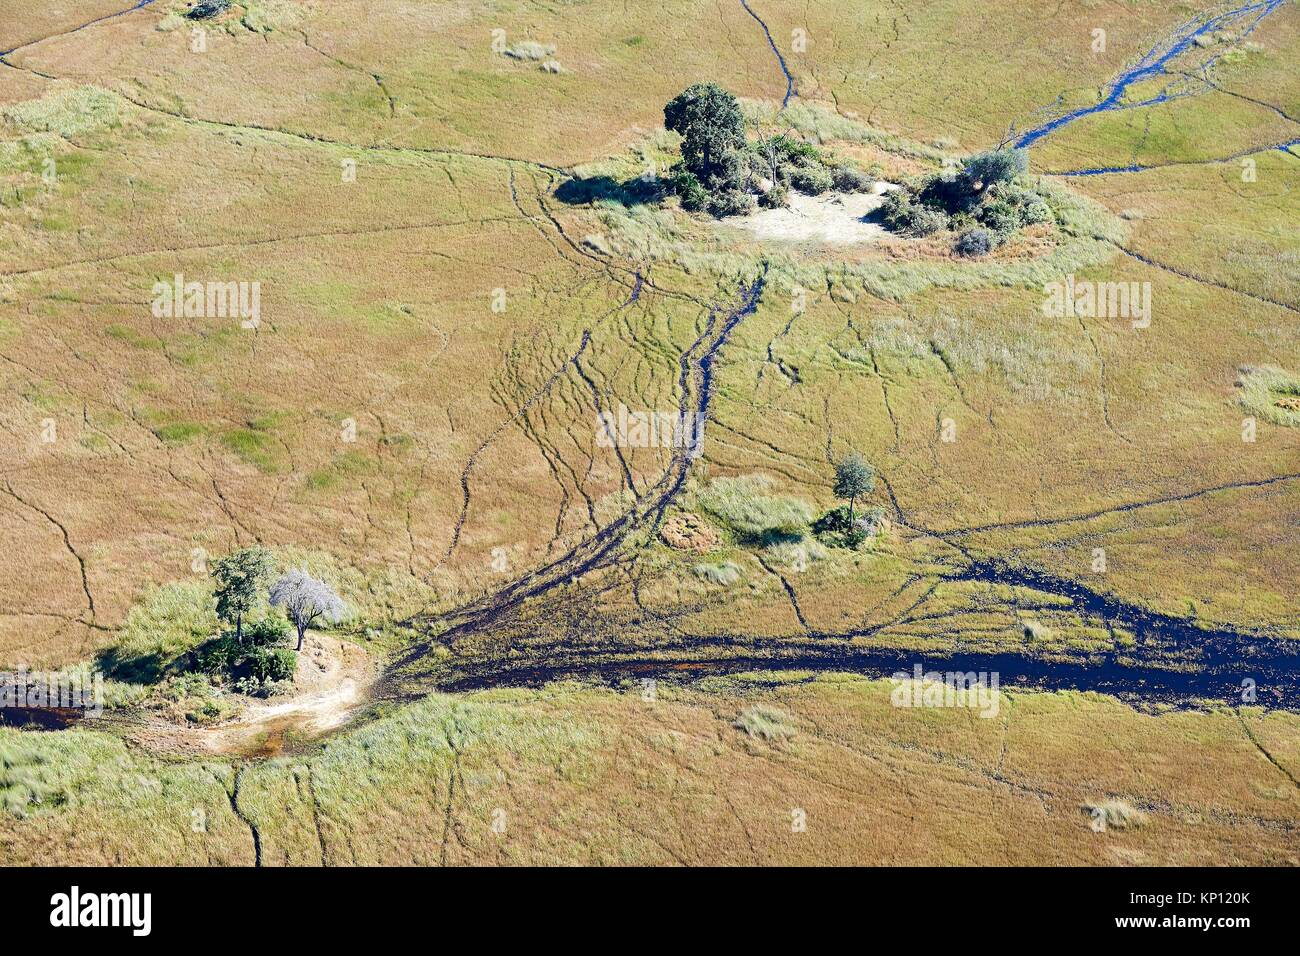 Aerial view of the Okavango delta with channels, swamps and islands, Botswana, Africa. Stock Photo